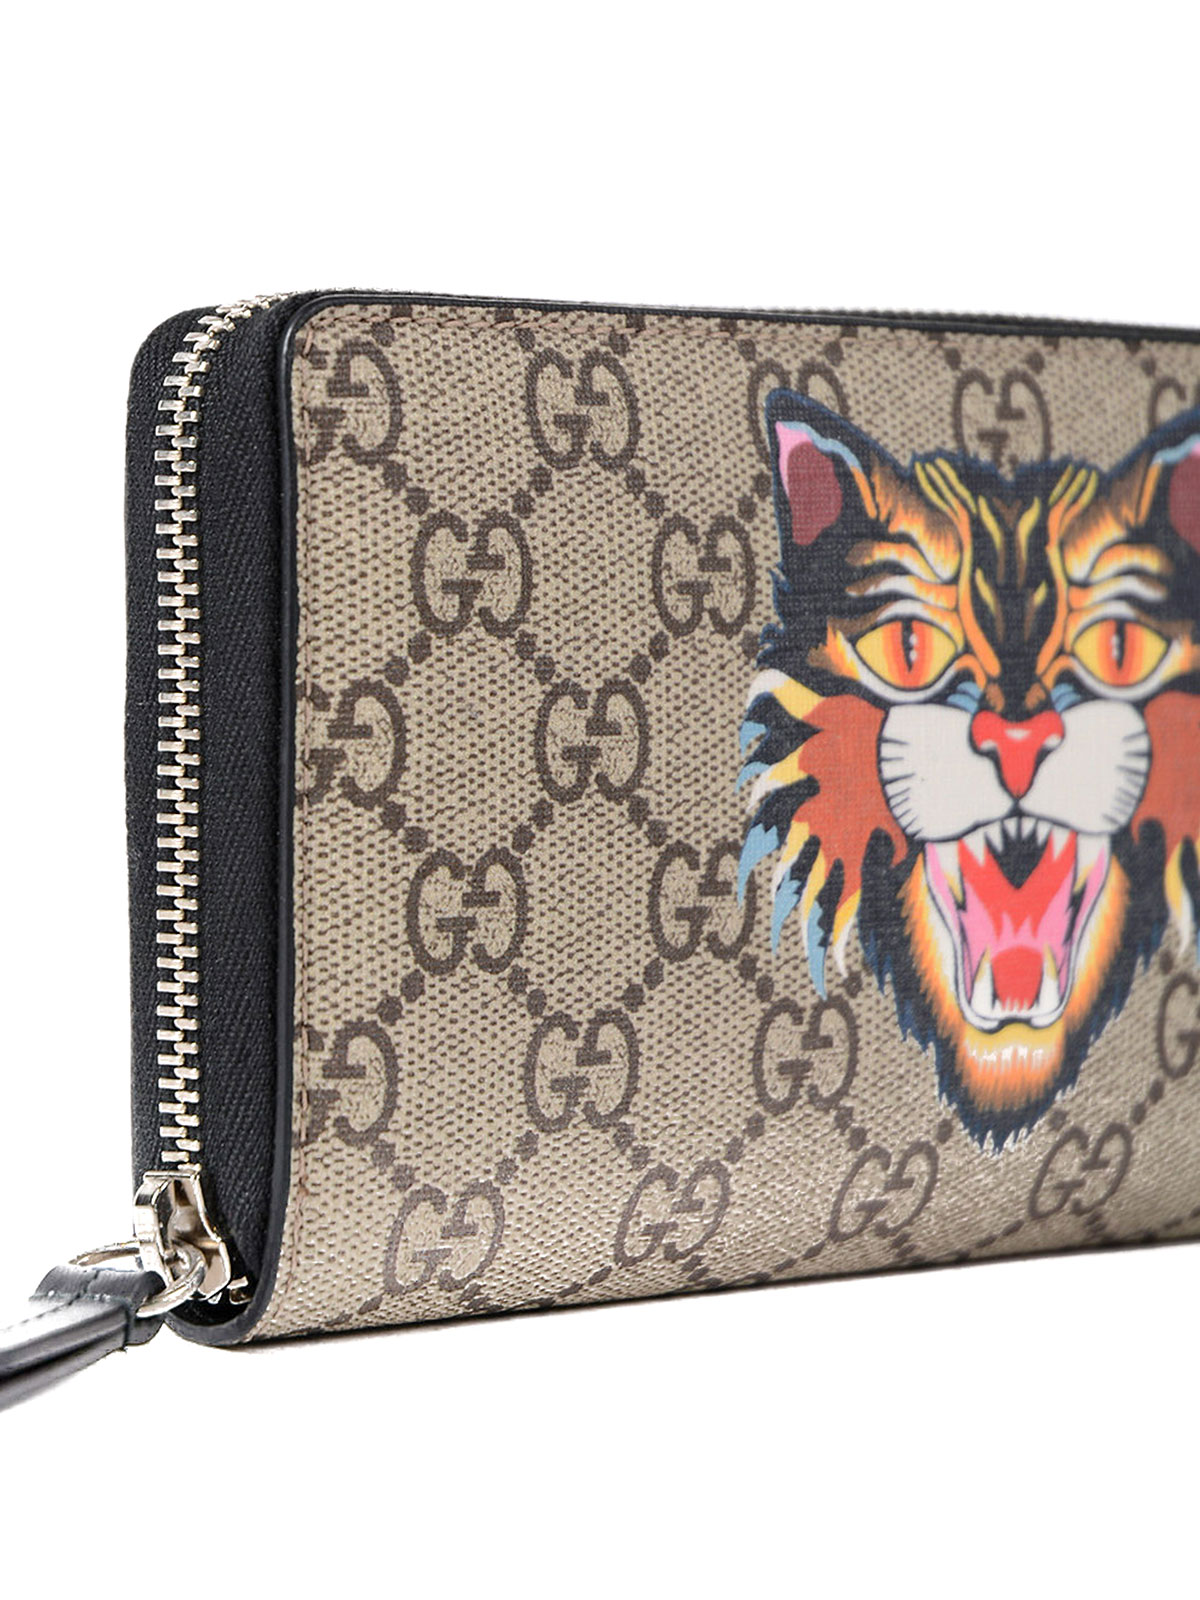 7a9783e82699 Gucci - Tiger GG Supreme zip-around wallet - wallets & purses ...